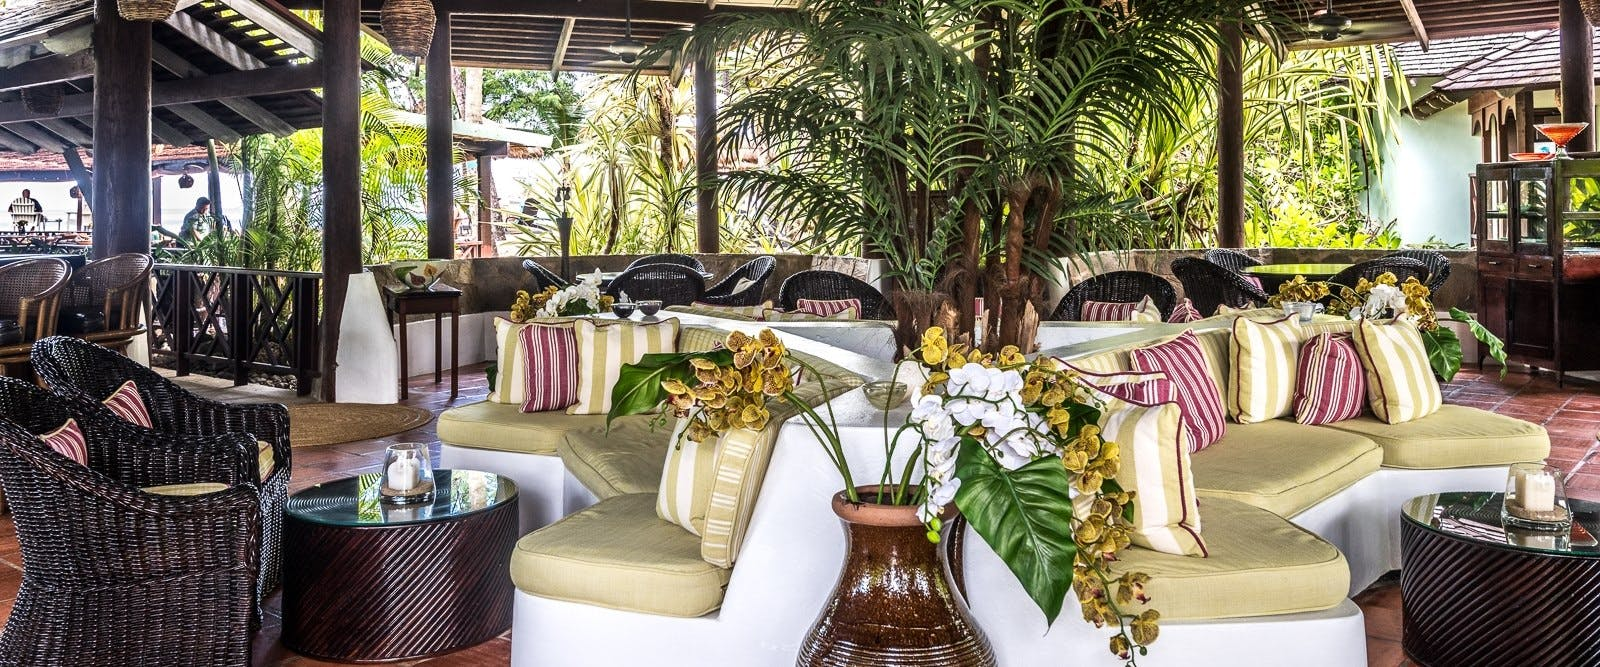 Bamboo lounge at East Winds, St Lucia